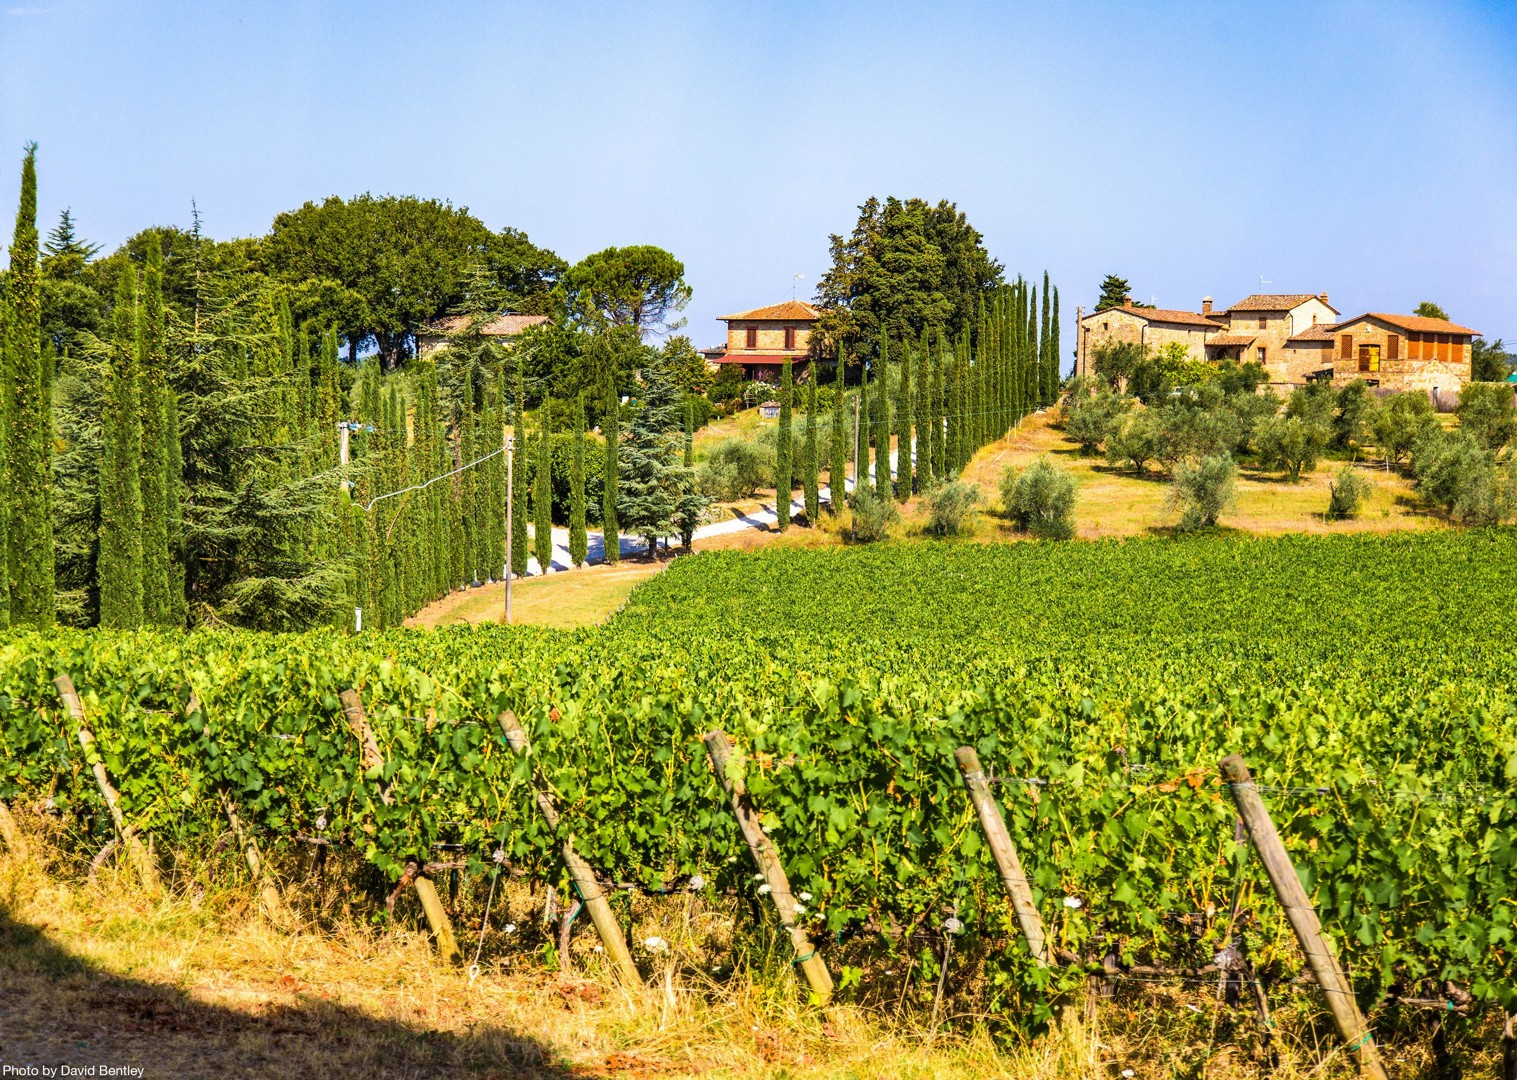 0077 Day 4 Chianti Region.jpg - Italy - Tuscany - Giro della Toscana - Guided Road Cycling Holiday - Road Cycling